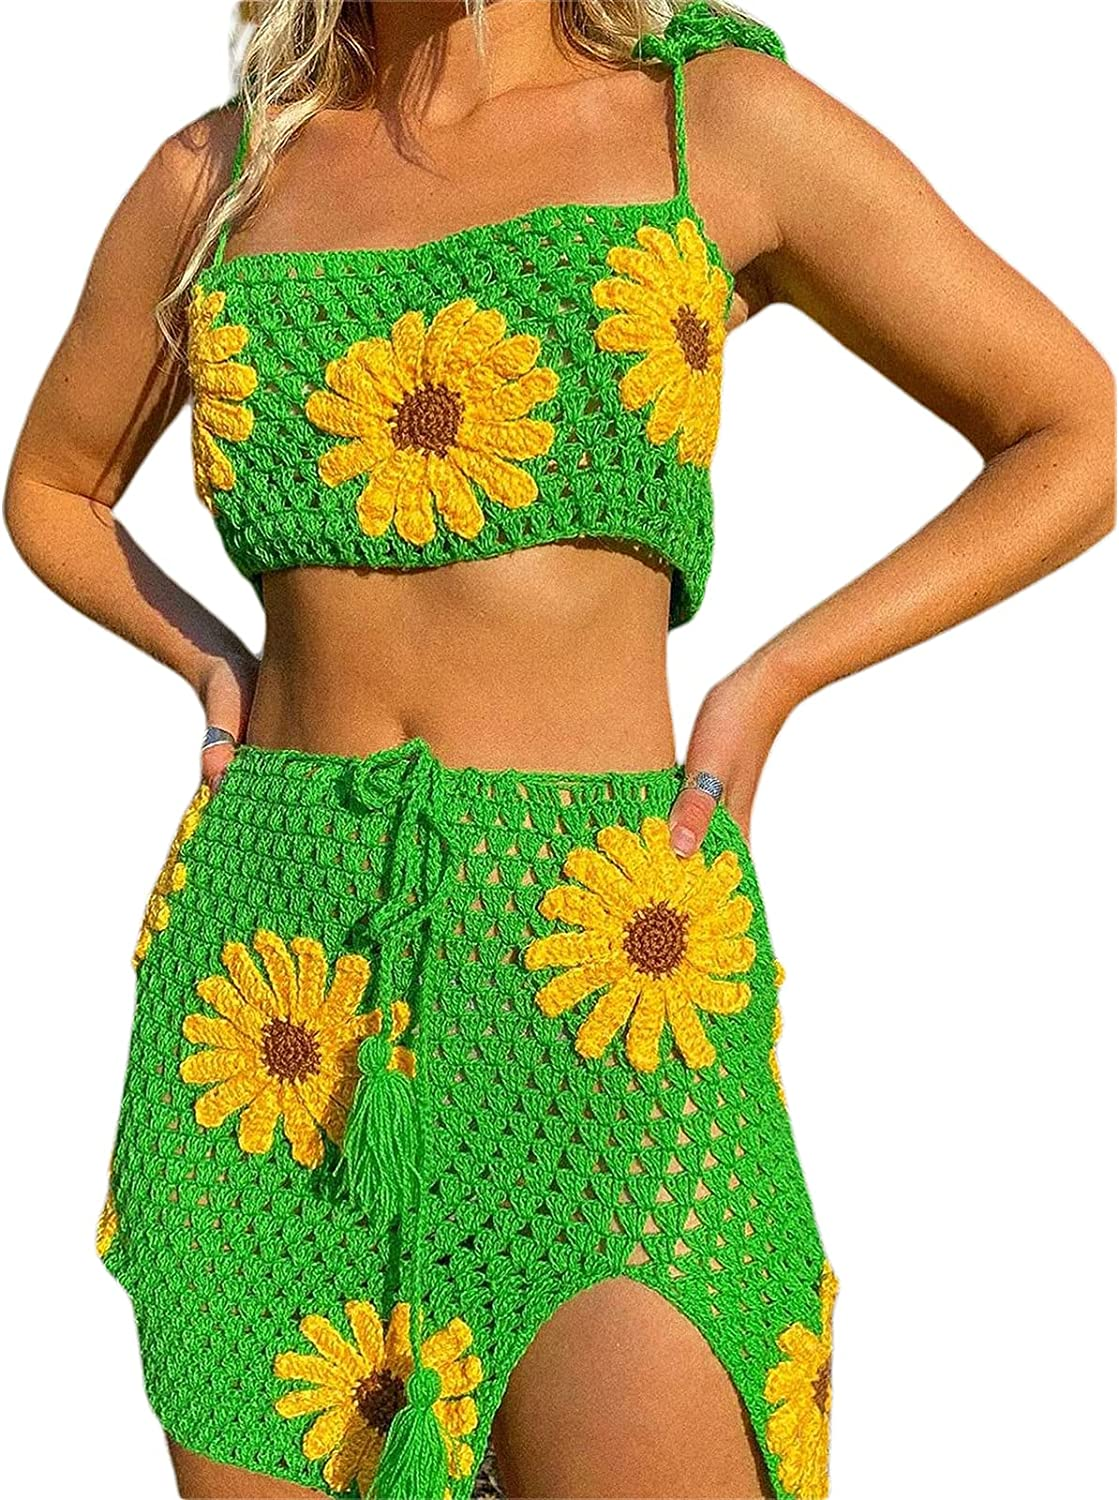 Womens Y2k 90s Crochet Knitted Floral Crop Top Mini Split Skirt Set Hollow Out 2 Piece Outfits See Through Bikini Cover up